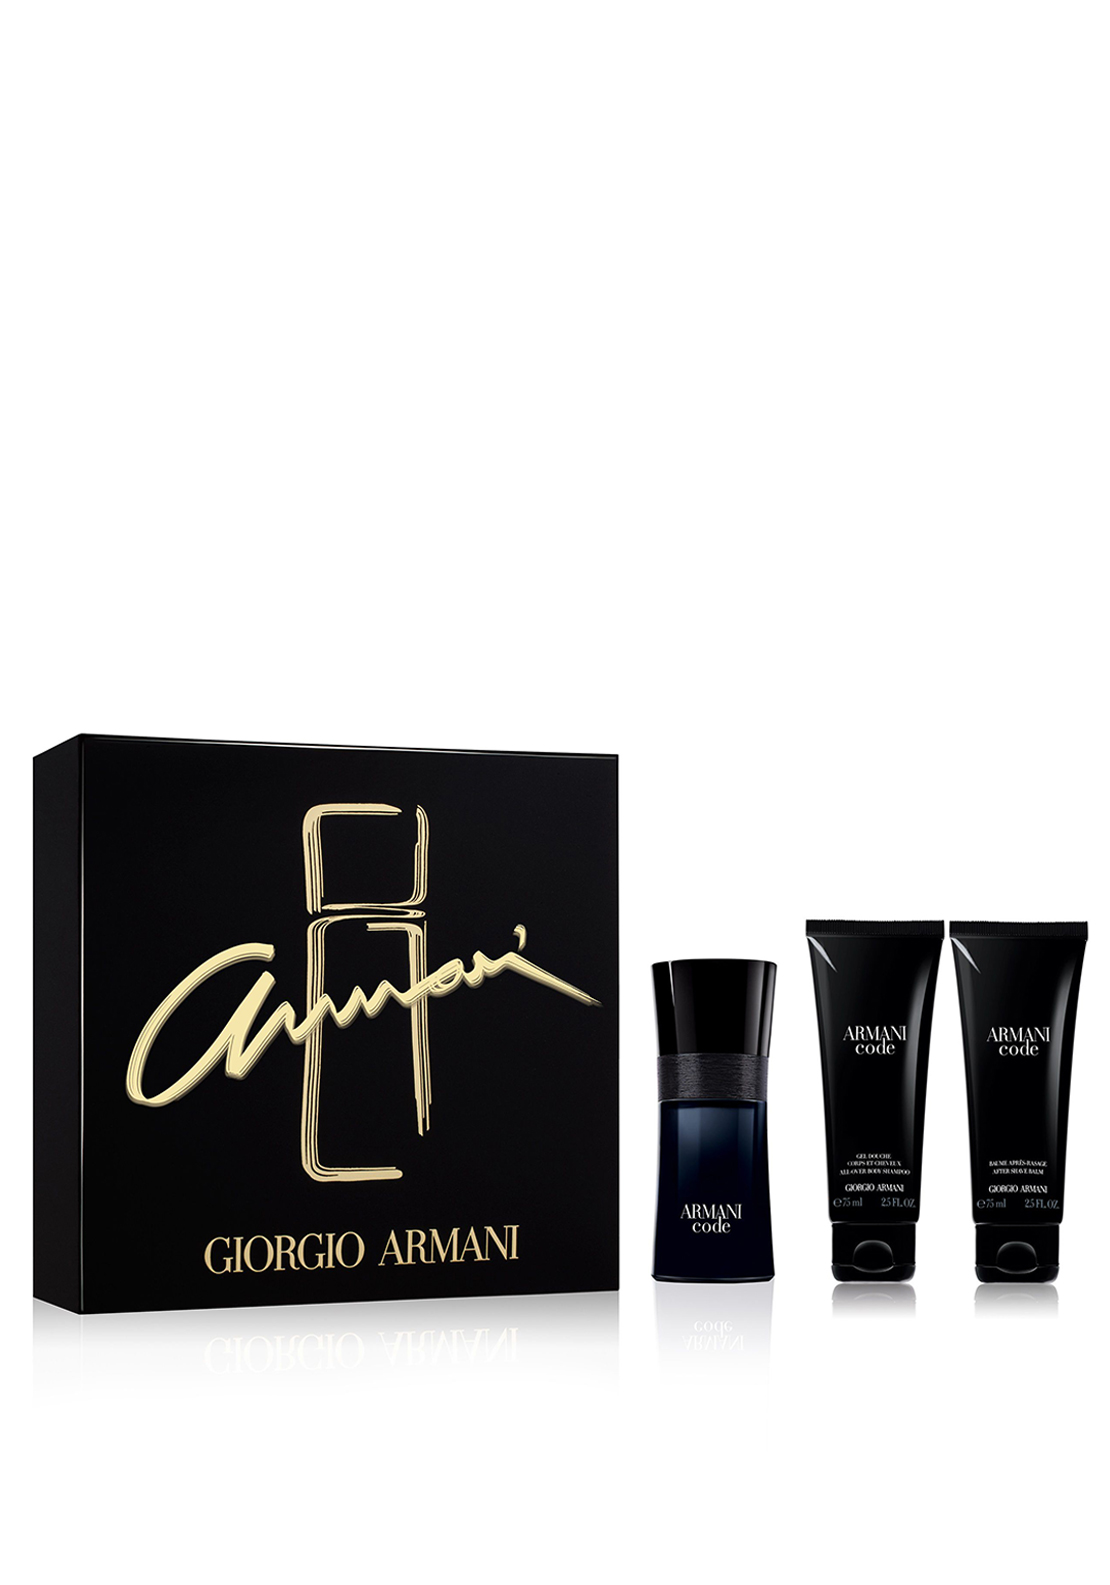 Armani Code, Giorgio Armani Gift Set for Men 50ml